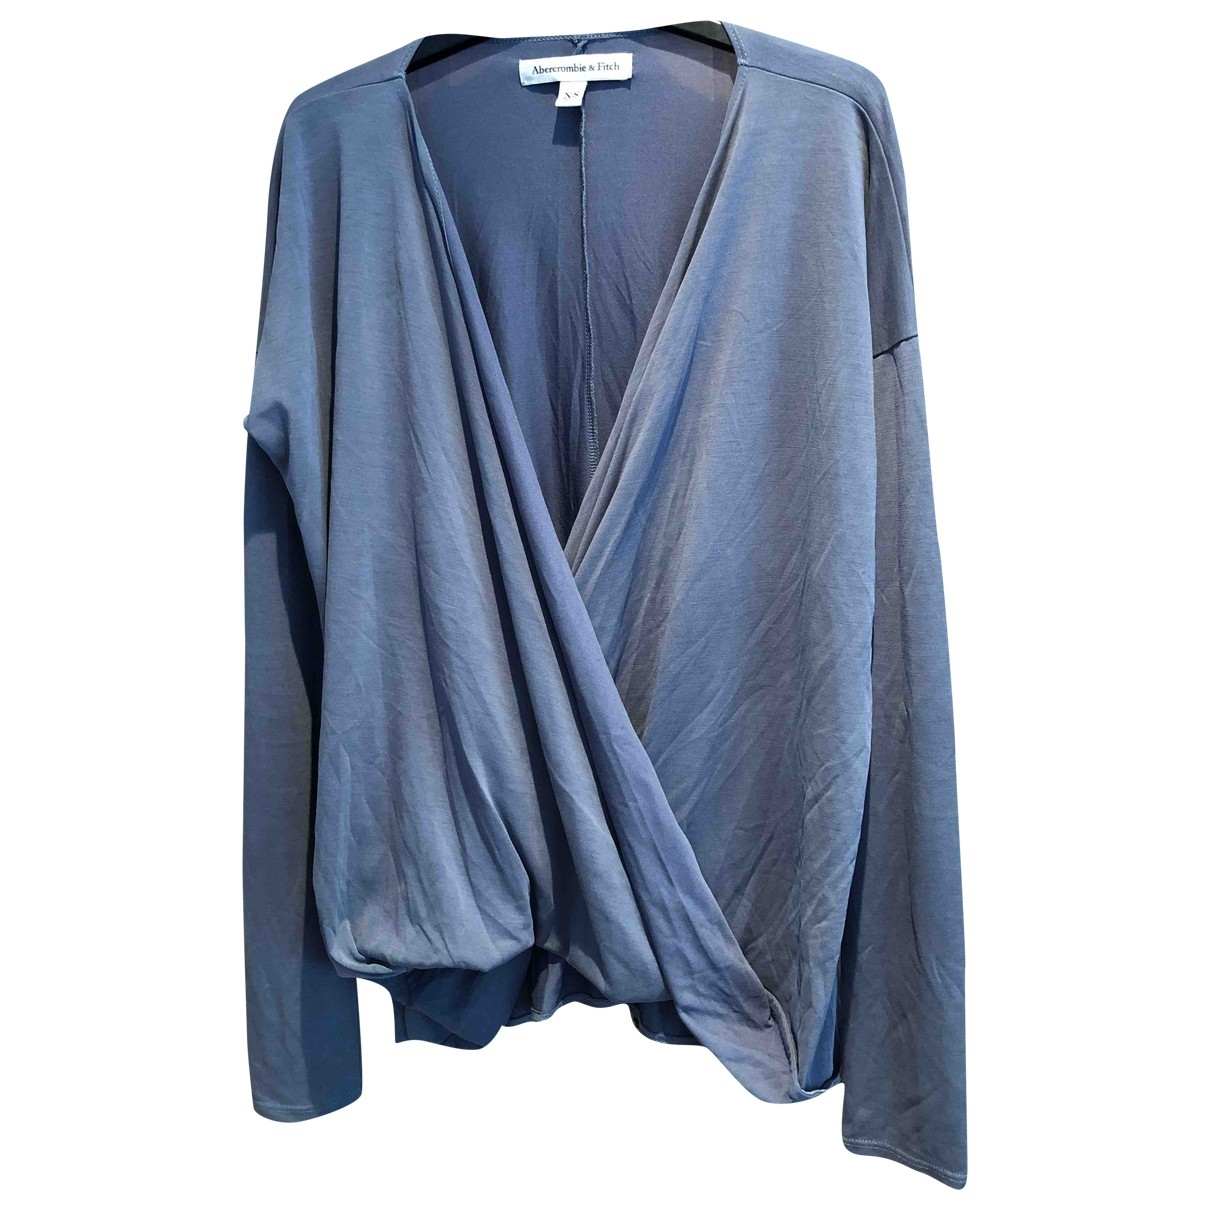 Abercrombie & Fitch \N Blue  top for Women 8 UK